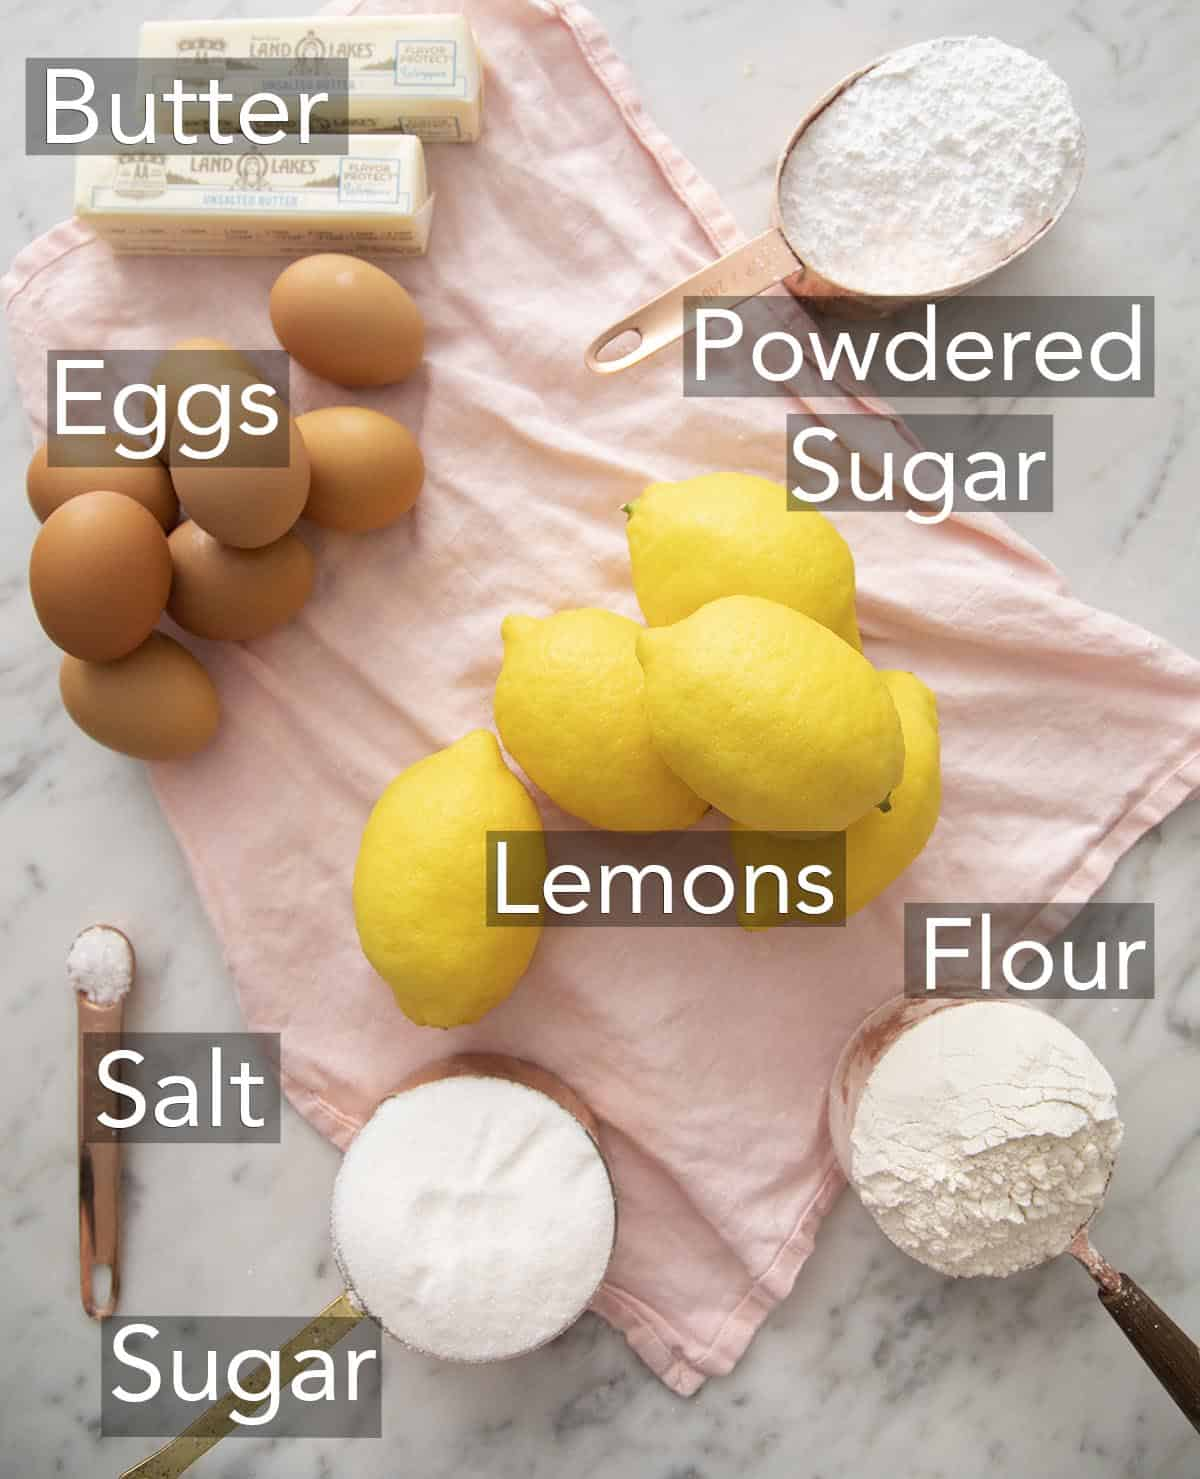 Ingredients for Lemon bars on a counter